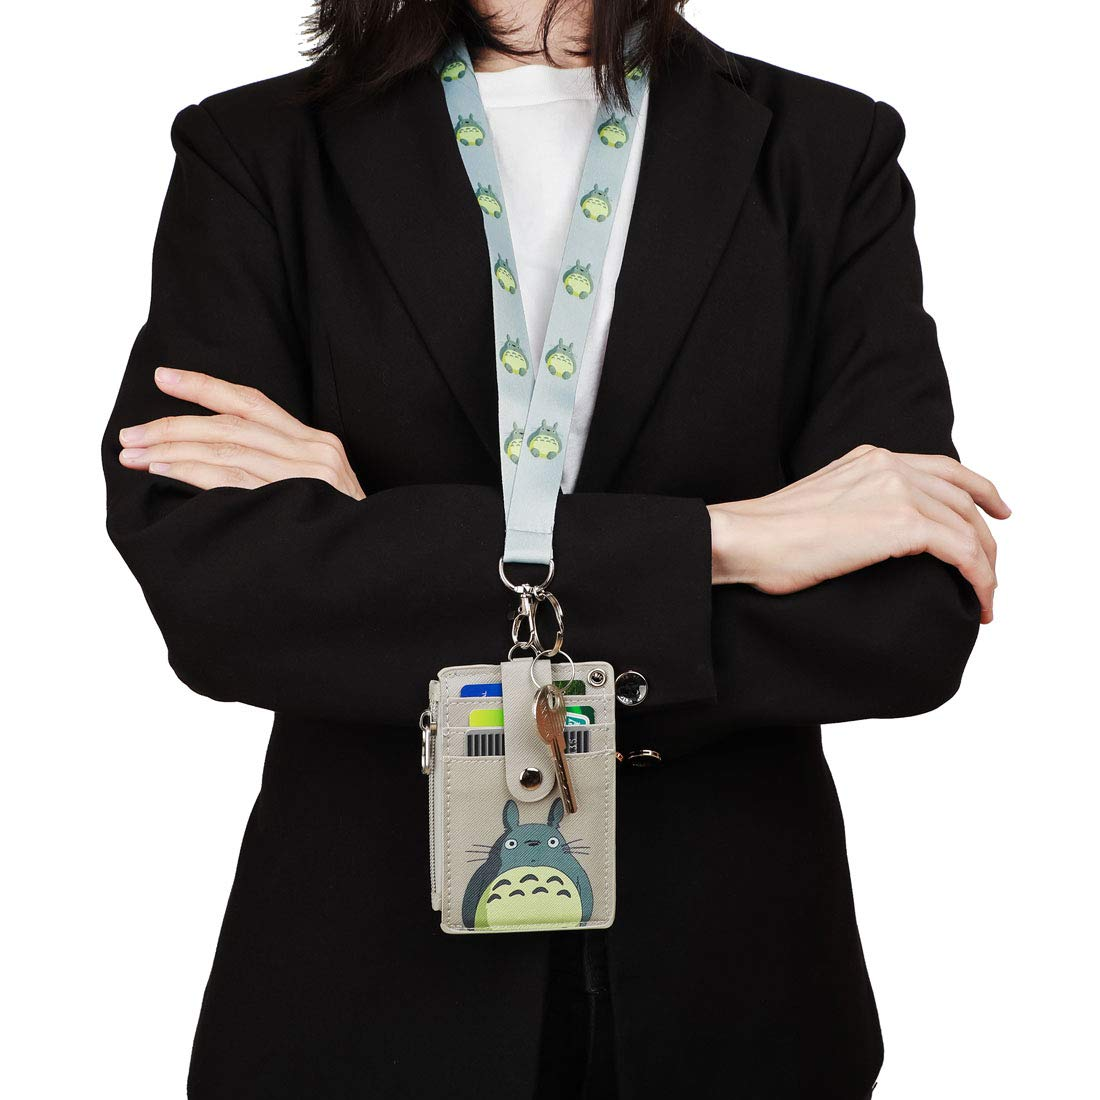 Amazon.com : Badge Holder with Zipper, Cute ID Badge Holder ...